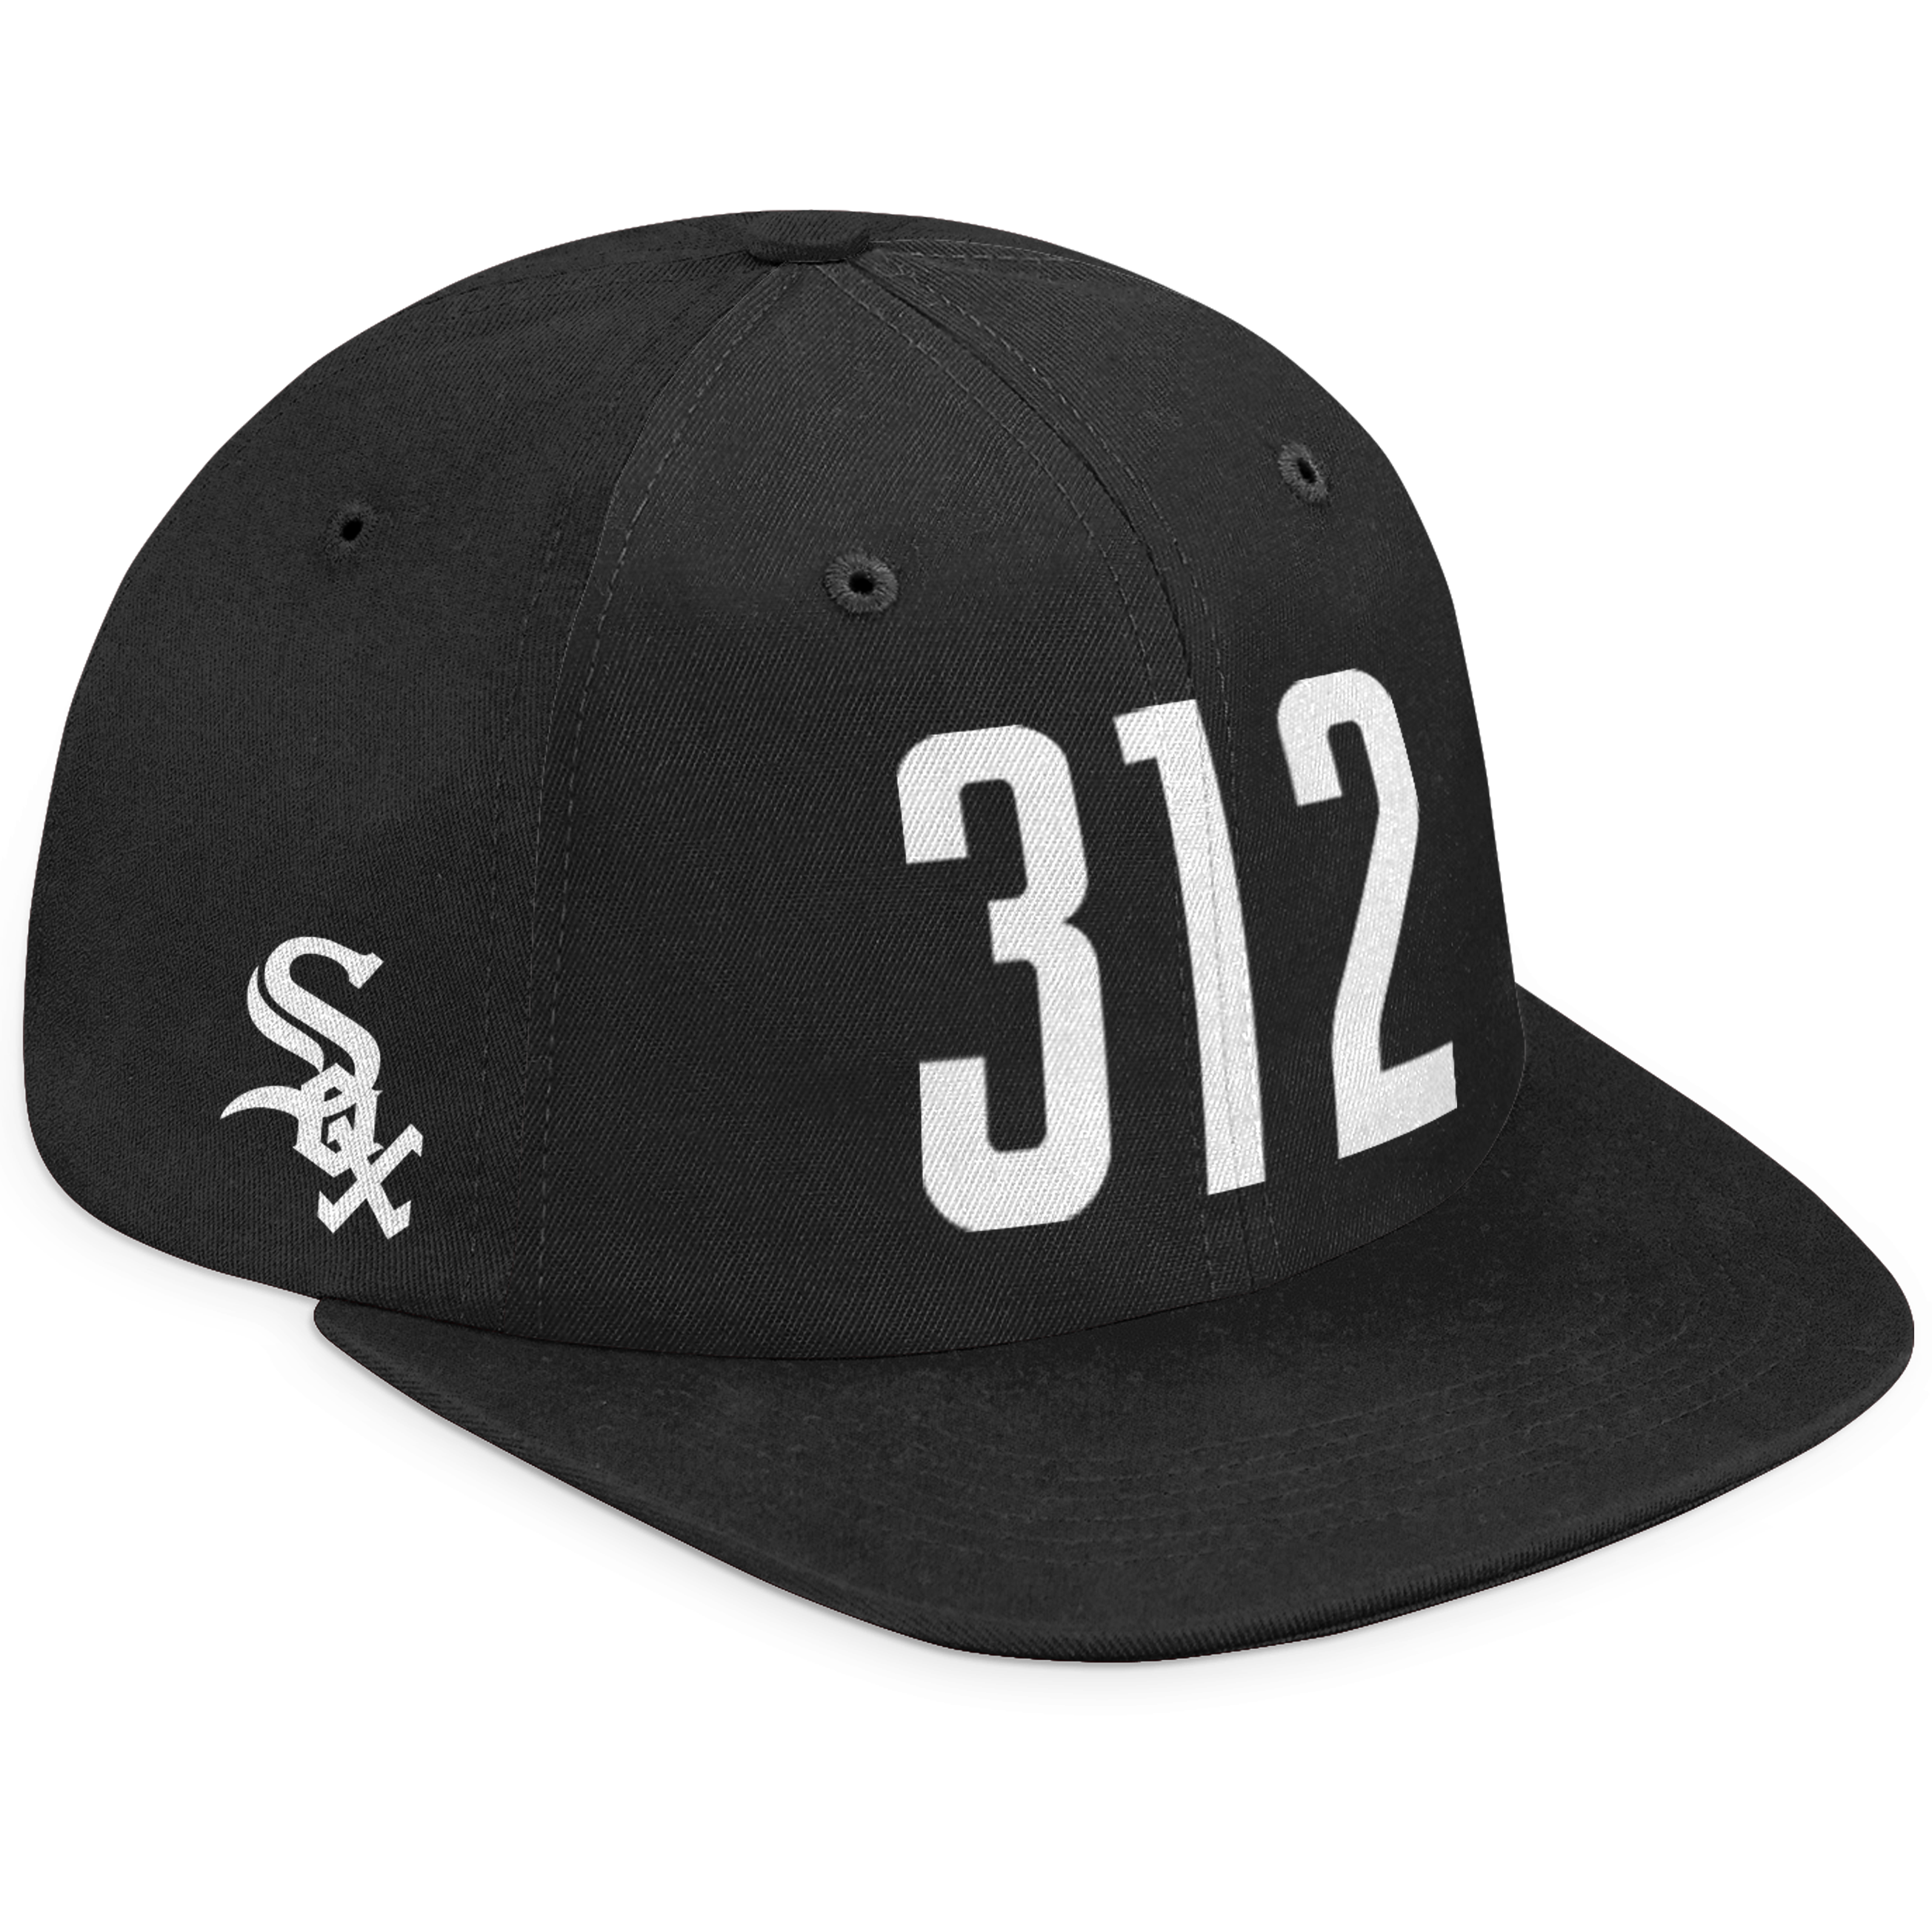 f1f9fccf93745 Promotion  White Sox 312 Hat. Presented By Goose Island